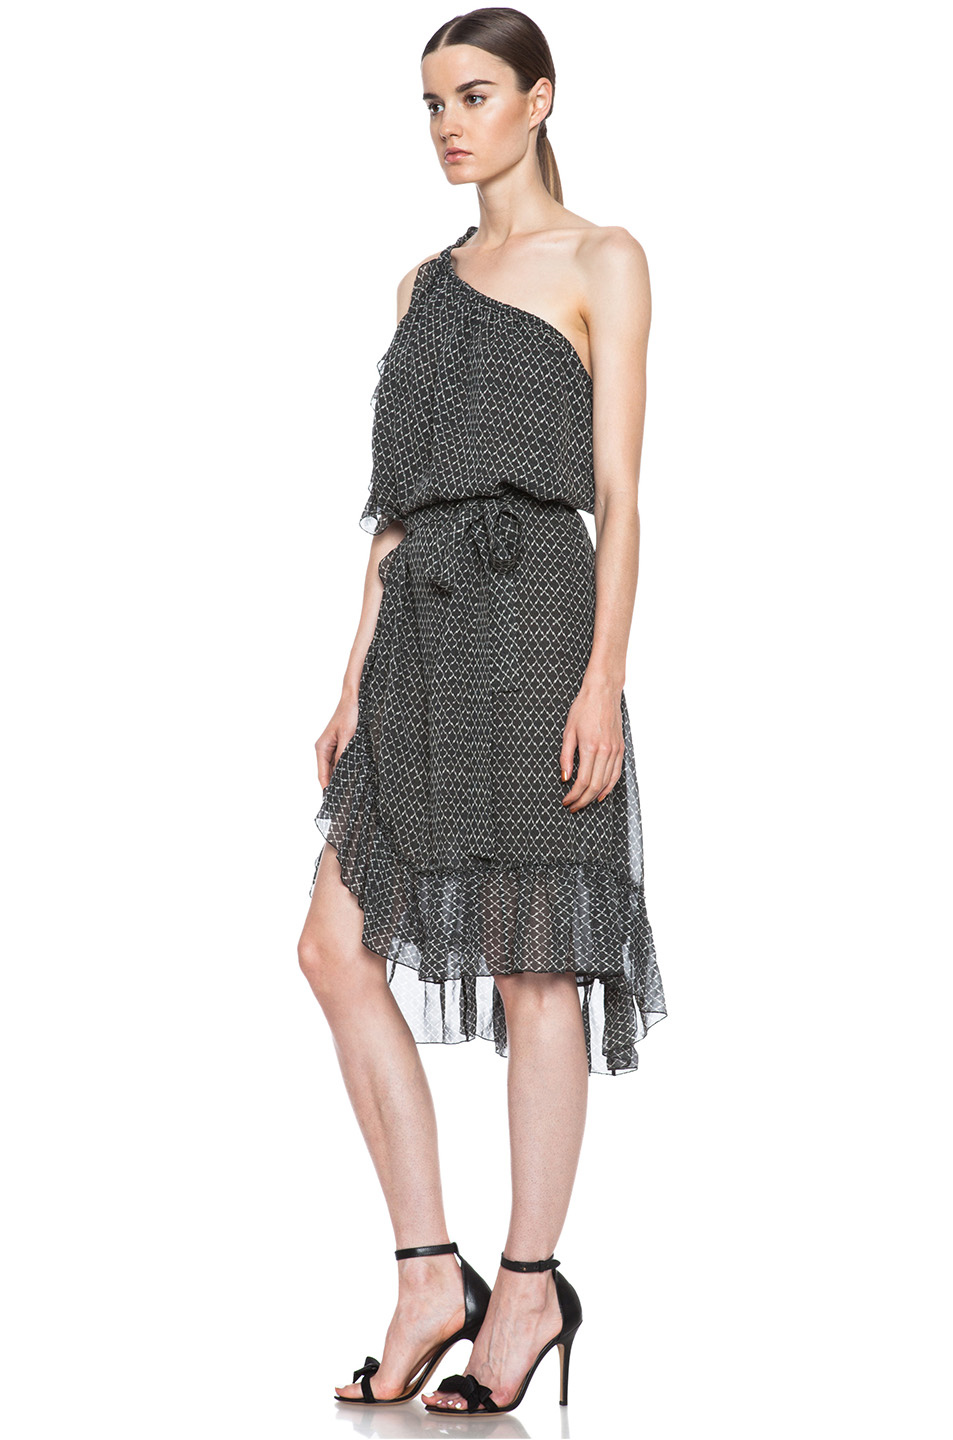 Aiden silk dress in black